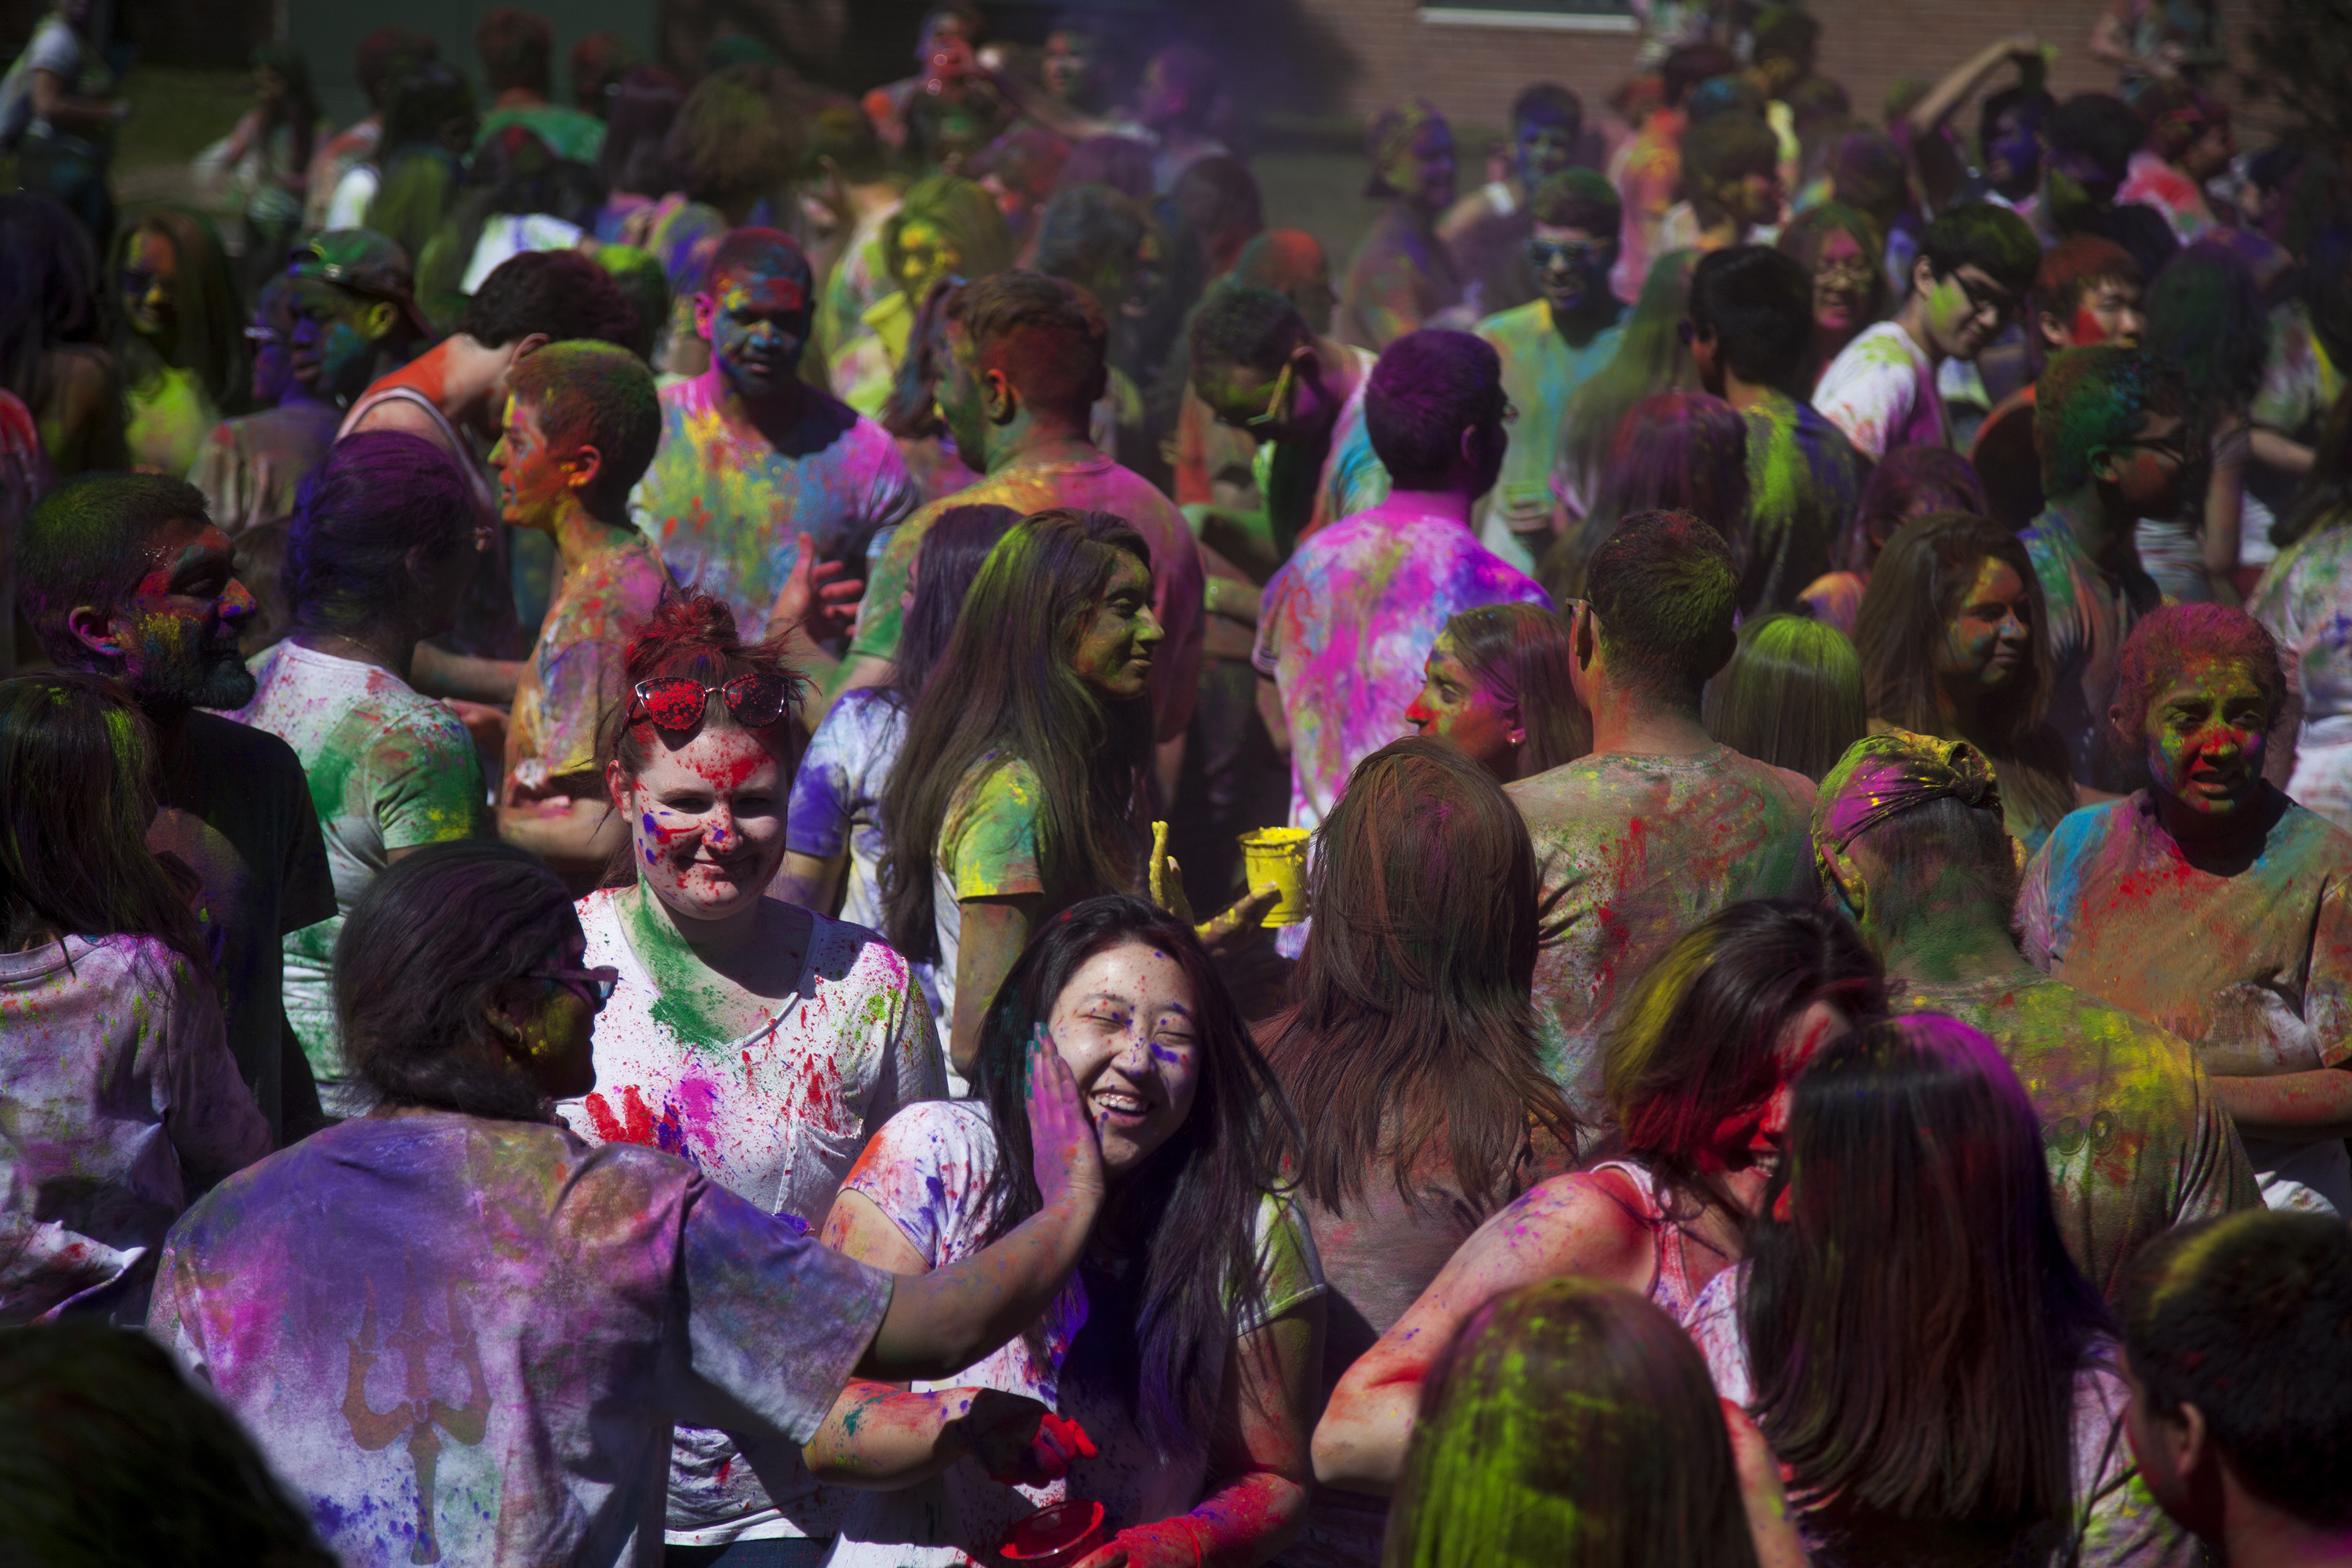 Students, above, celebrated Holi in the Mendelsohn pit on Sunday. They wore white shirts threw colorful powder on each other. ERIC SCHMID/THE STATESMAN